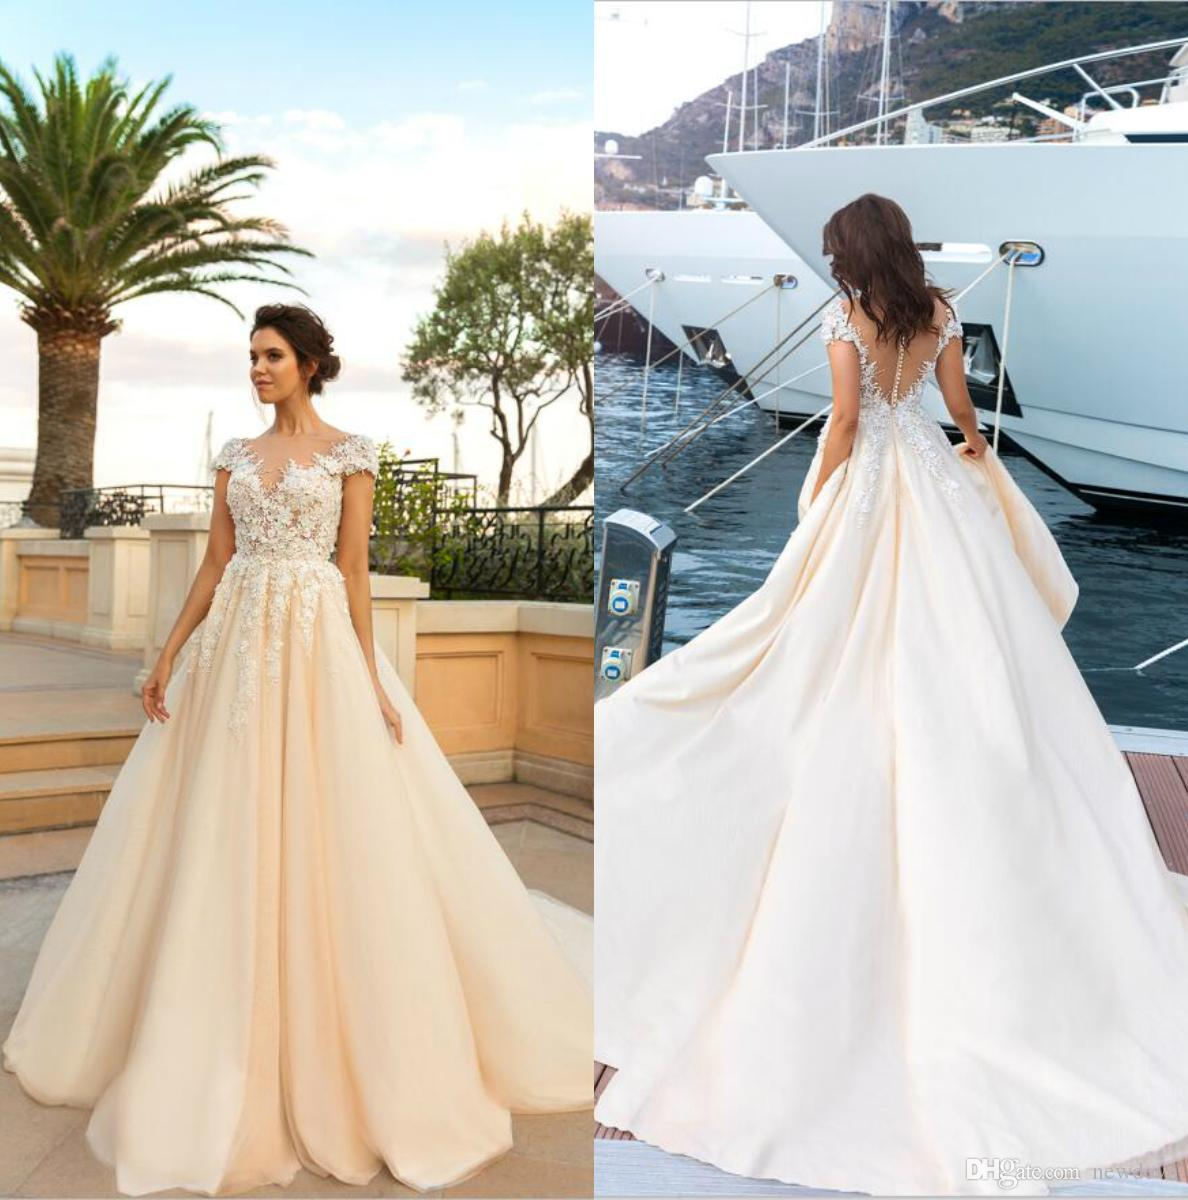 Plus Size Wedding Dresses Bridal Gowns Crystal Design Lace Sheer Jewel Neck  Champagne Vestidos De Novia With Capped Sleeves